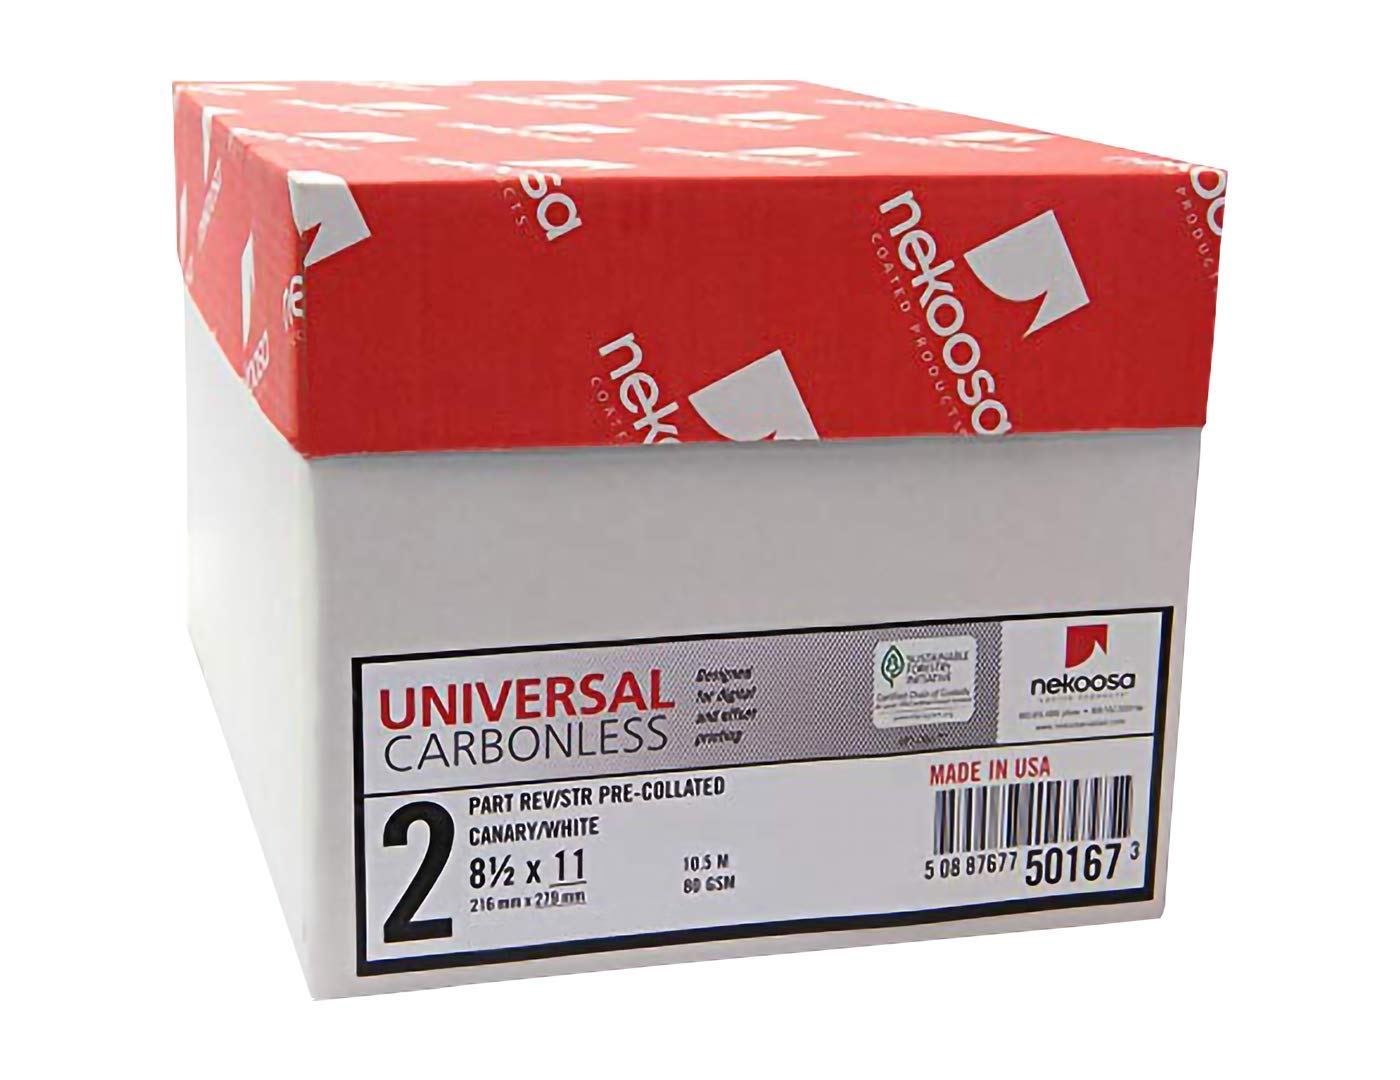 8.5 x 11 Nekoosa Universal Carbonless Paper, 2 Part Reverse (Bright White/Canary), 1250 Sets, 2500 Sheets, 5 Reams by PSD